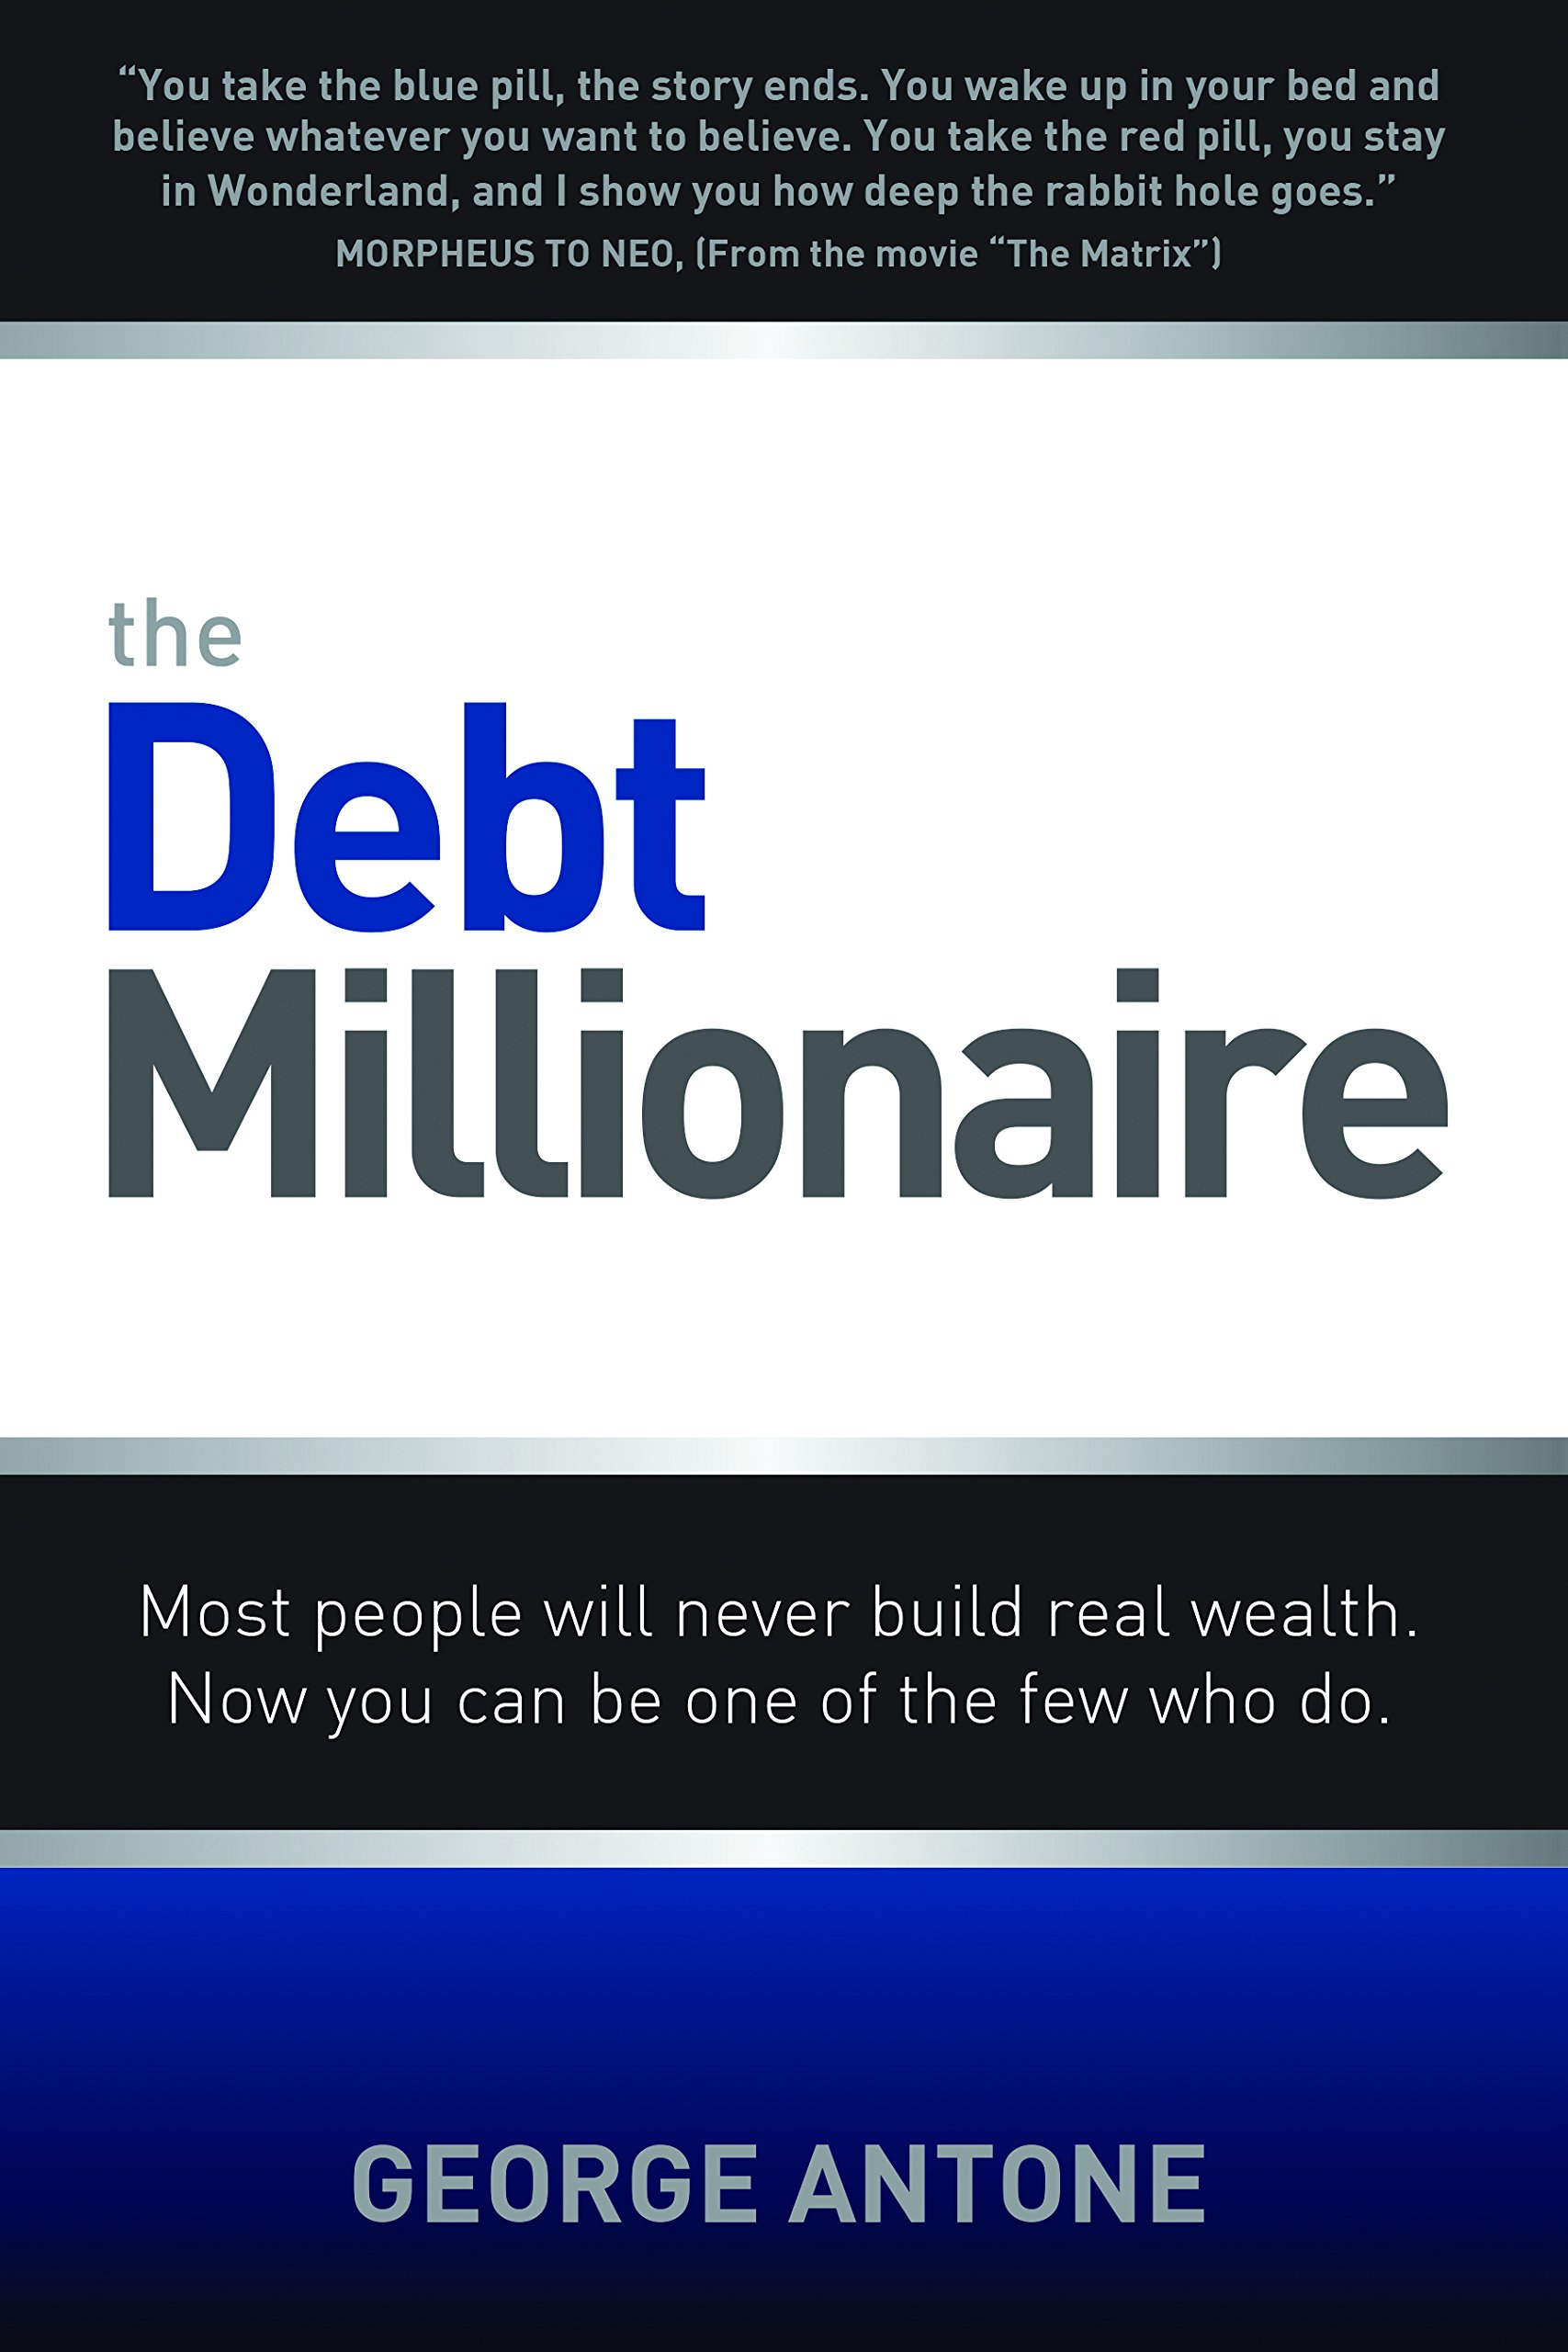 The Debt Millionaire: Most people will never build real wealth. Now you can be one of the few who do.